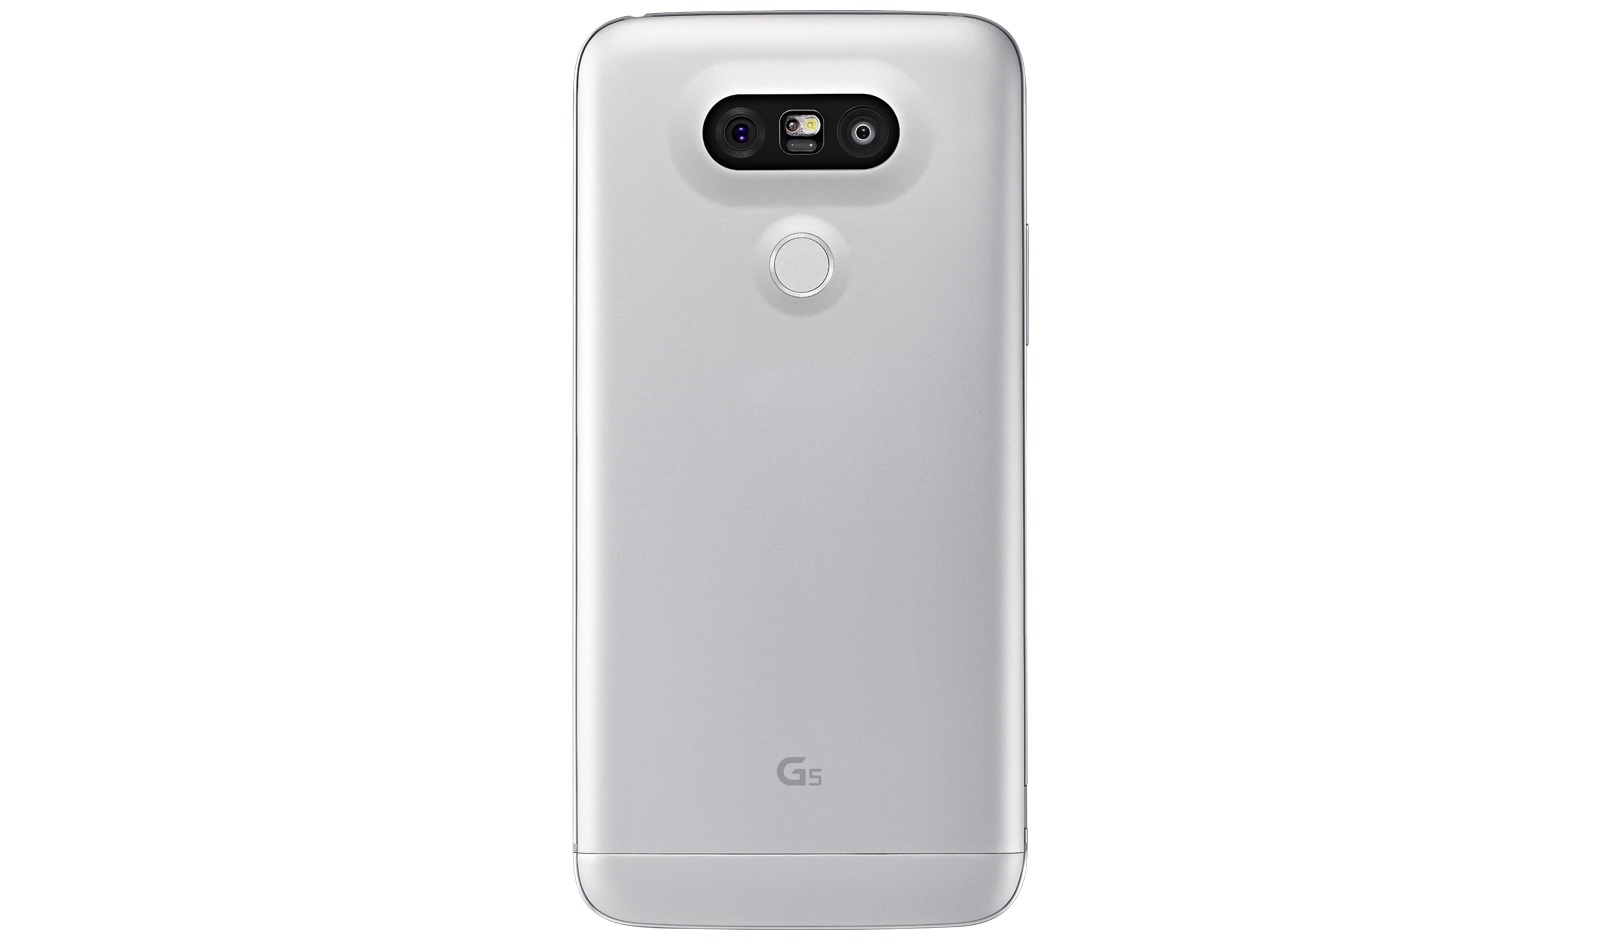 LG G5 H820 32GB Android Smartphone - Unlocked GSM